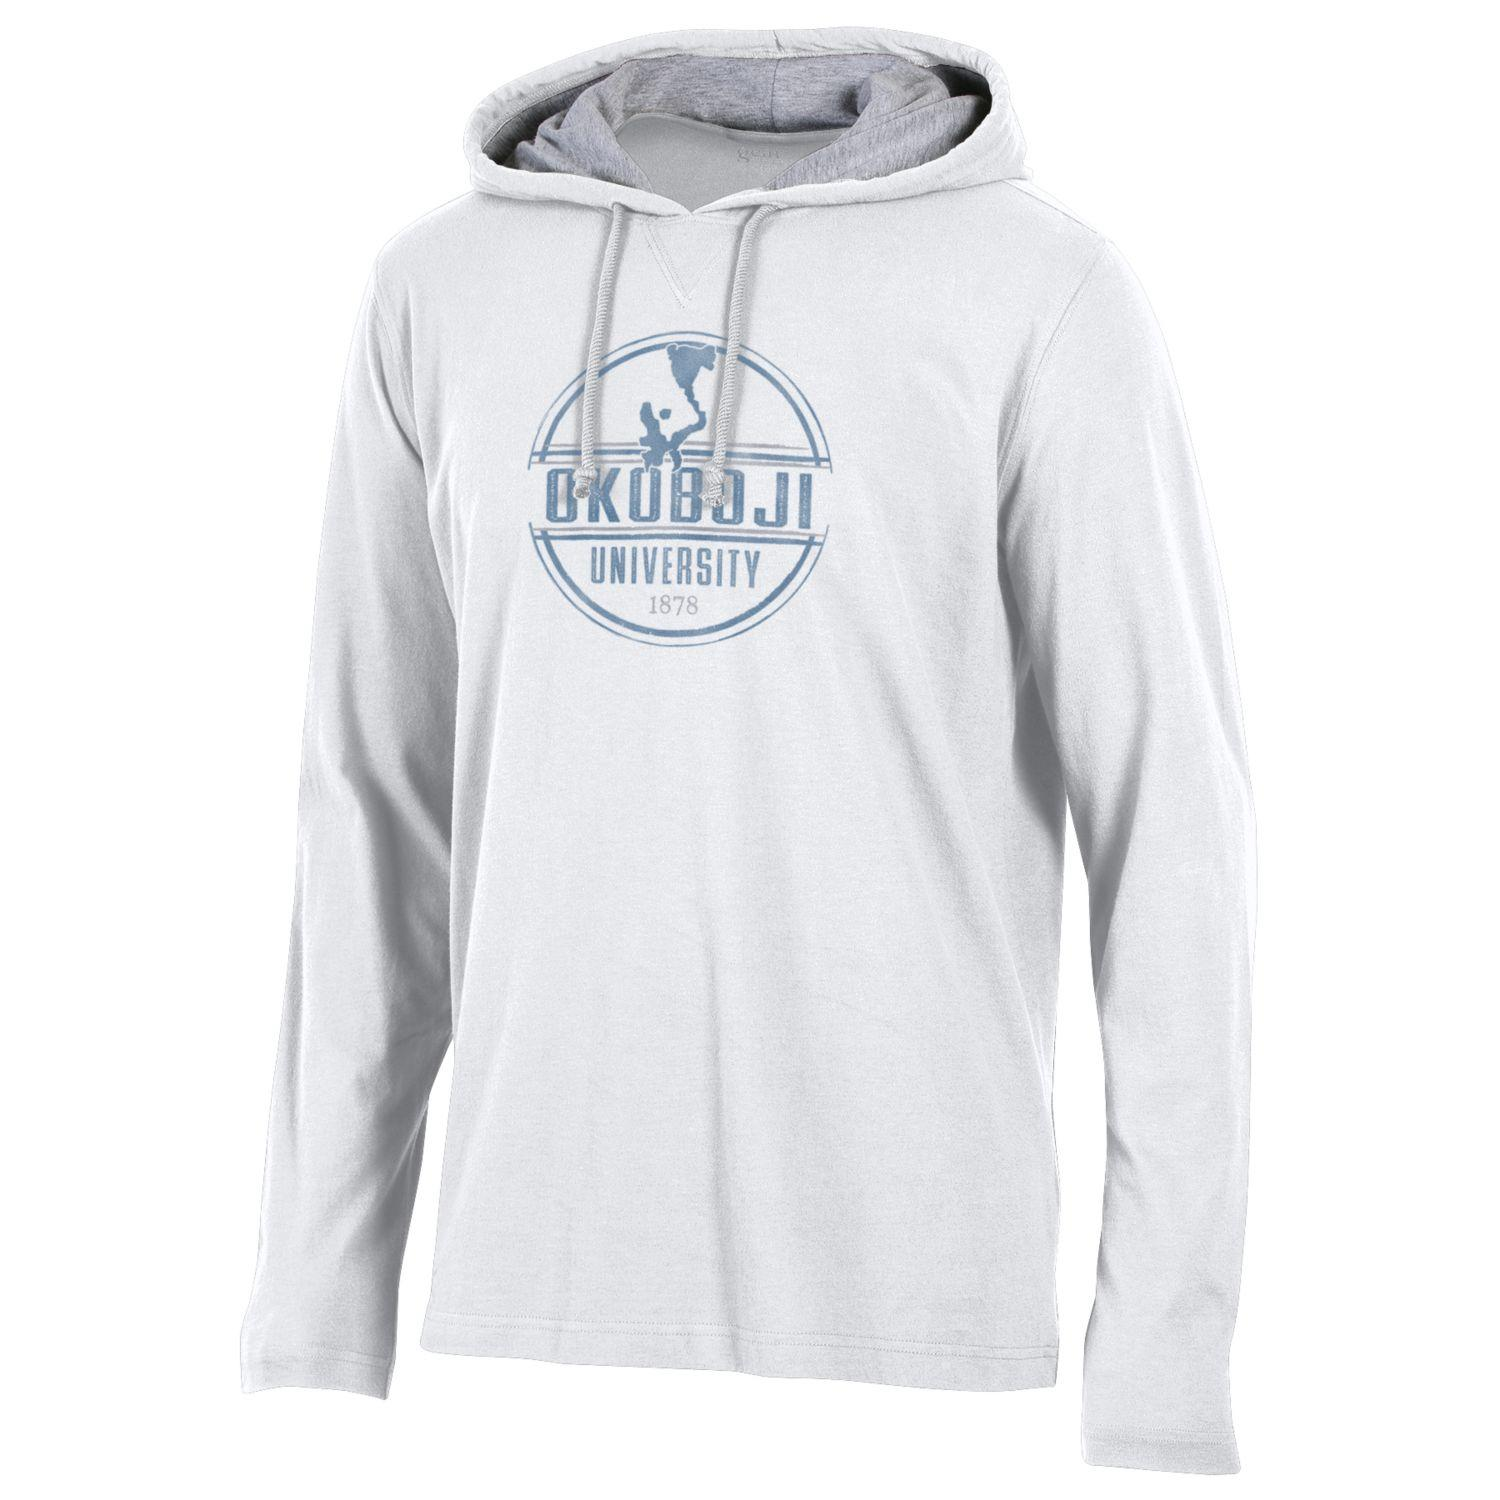 Light Weight Okoboji Hampton Hood - White/Oxford